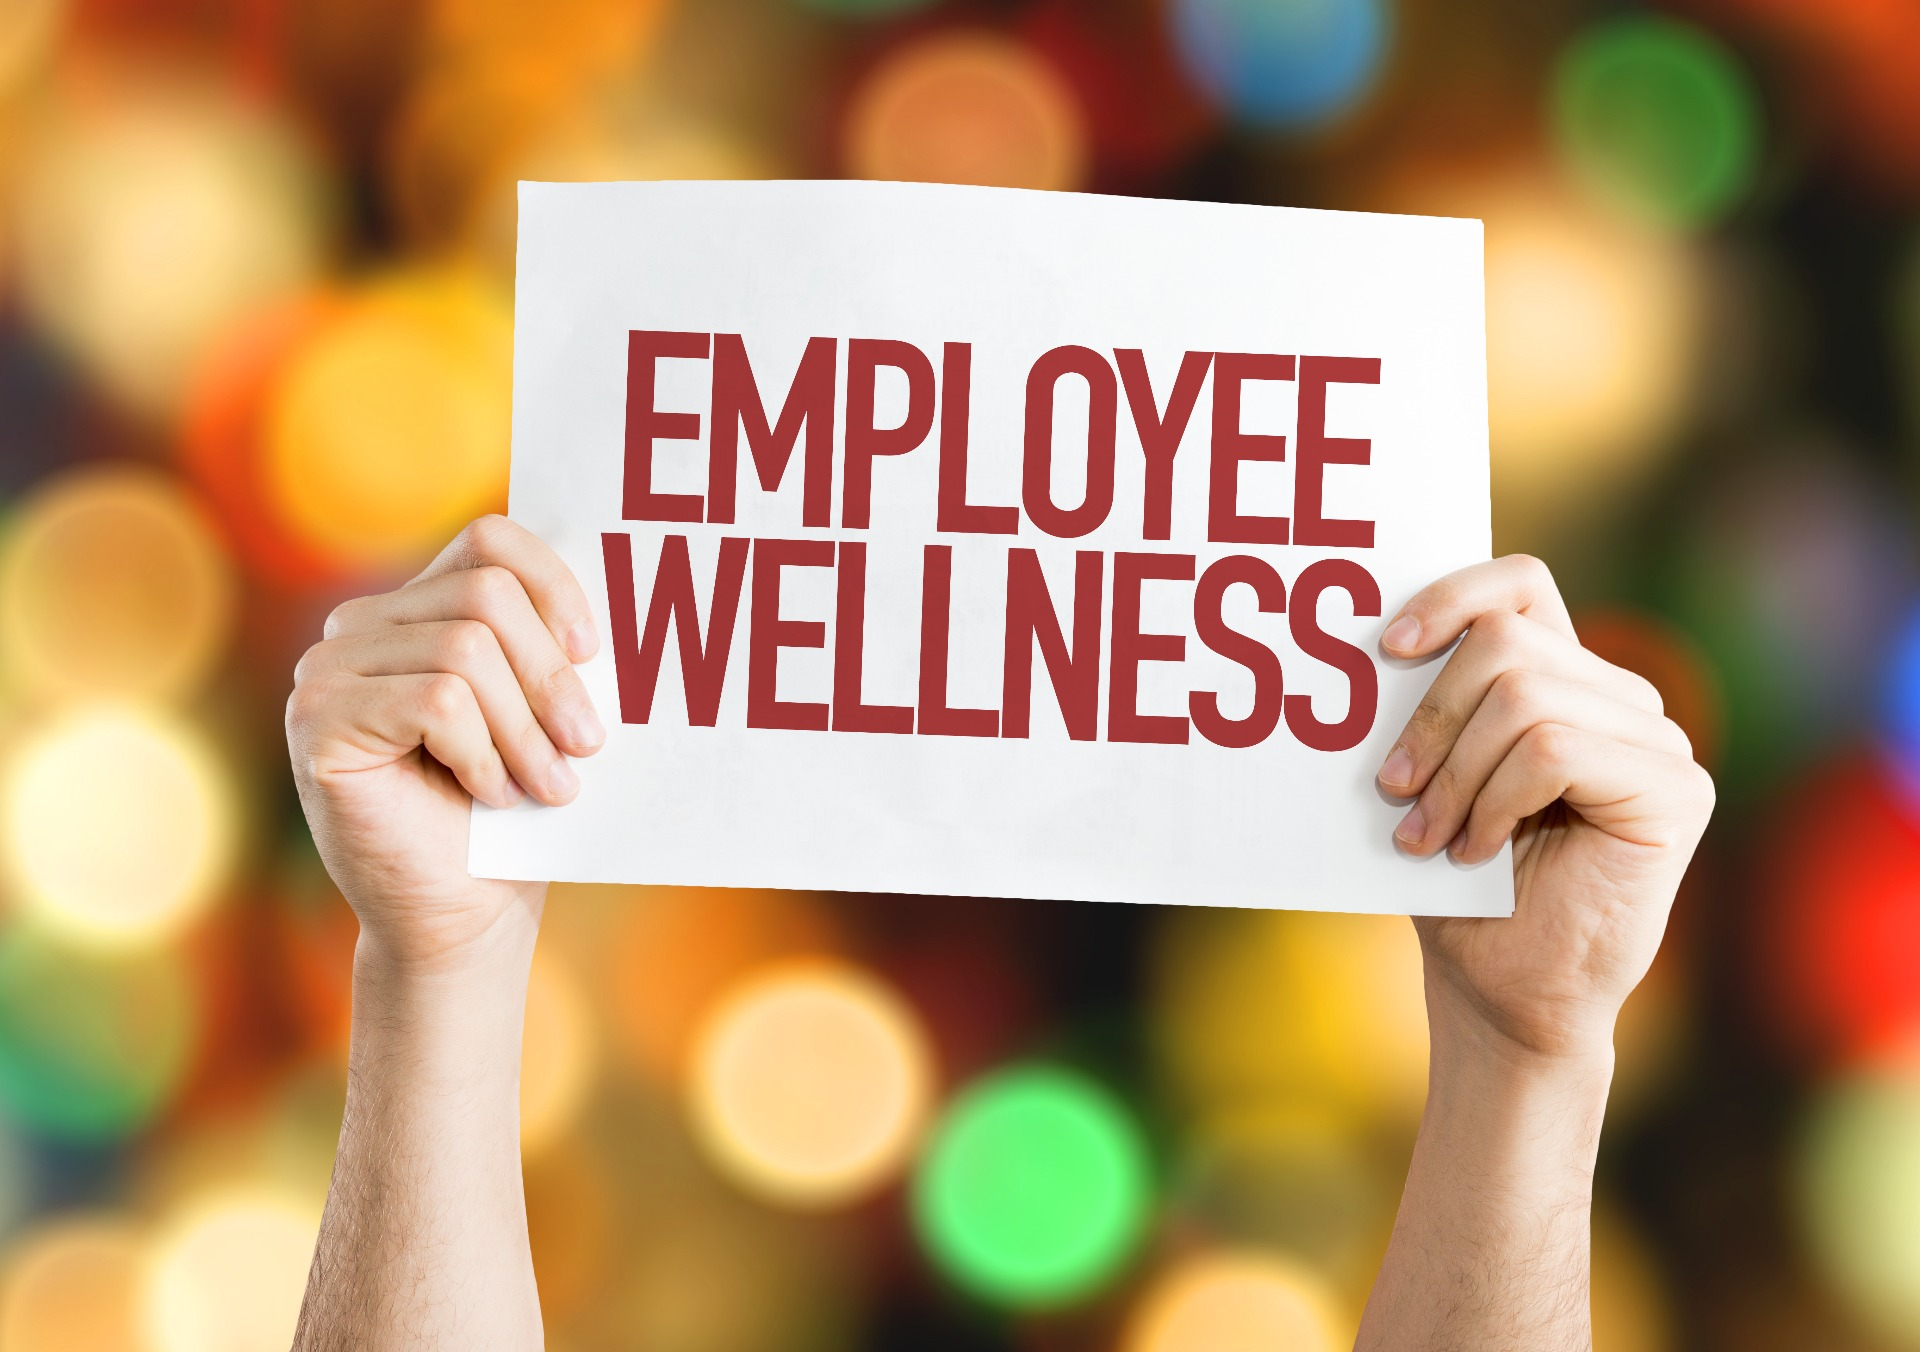 The Connection between Wellbeing and Workplace Performance